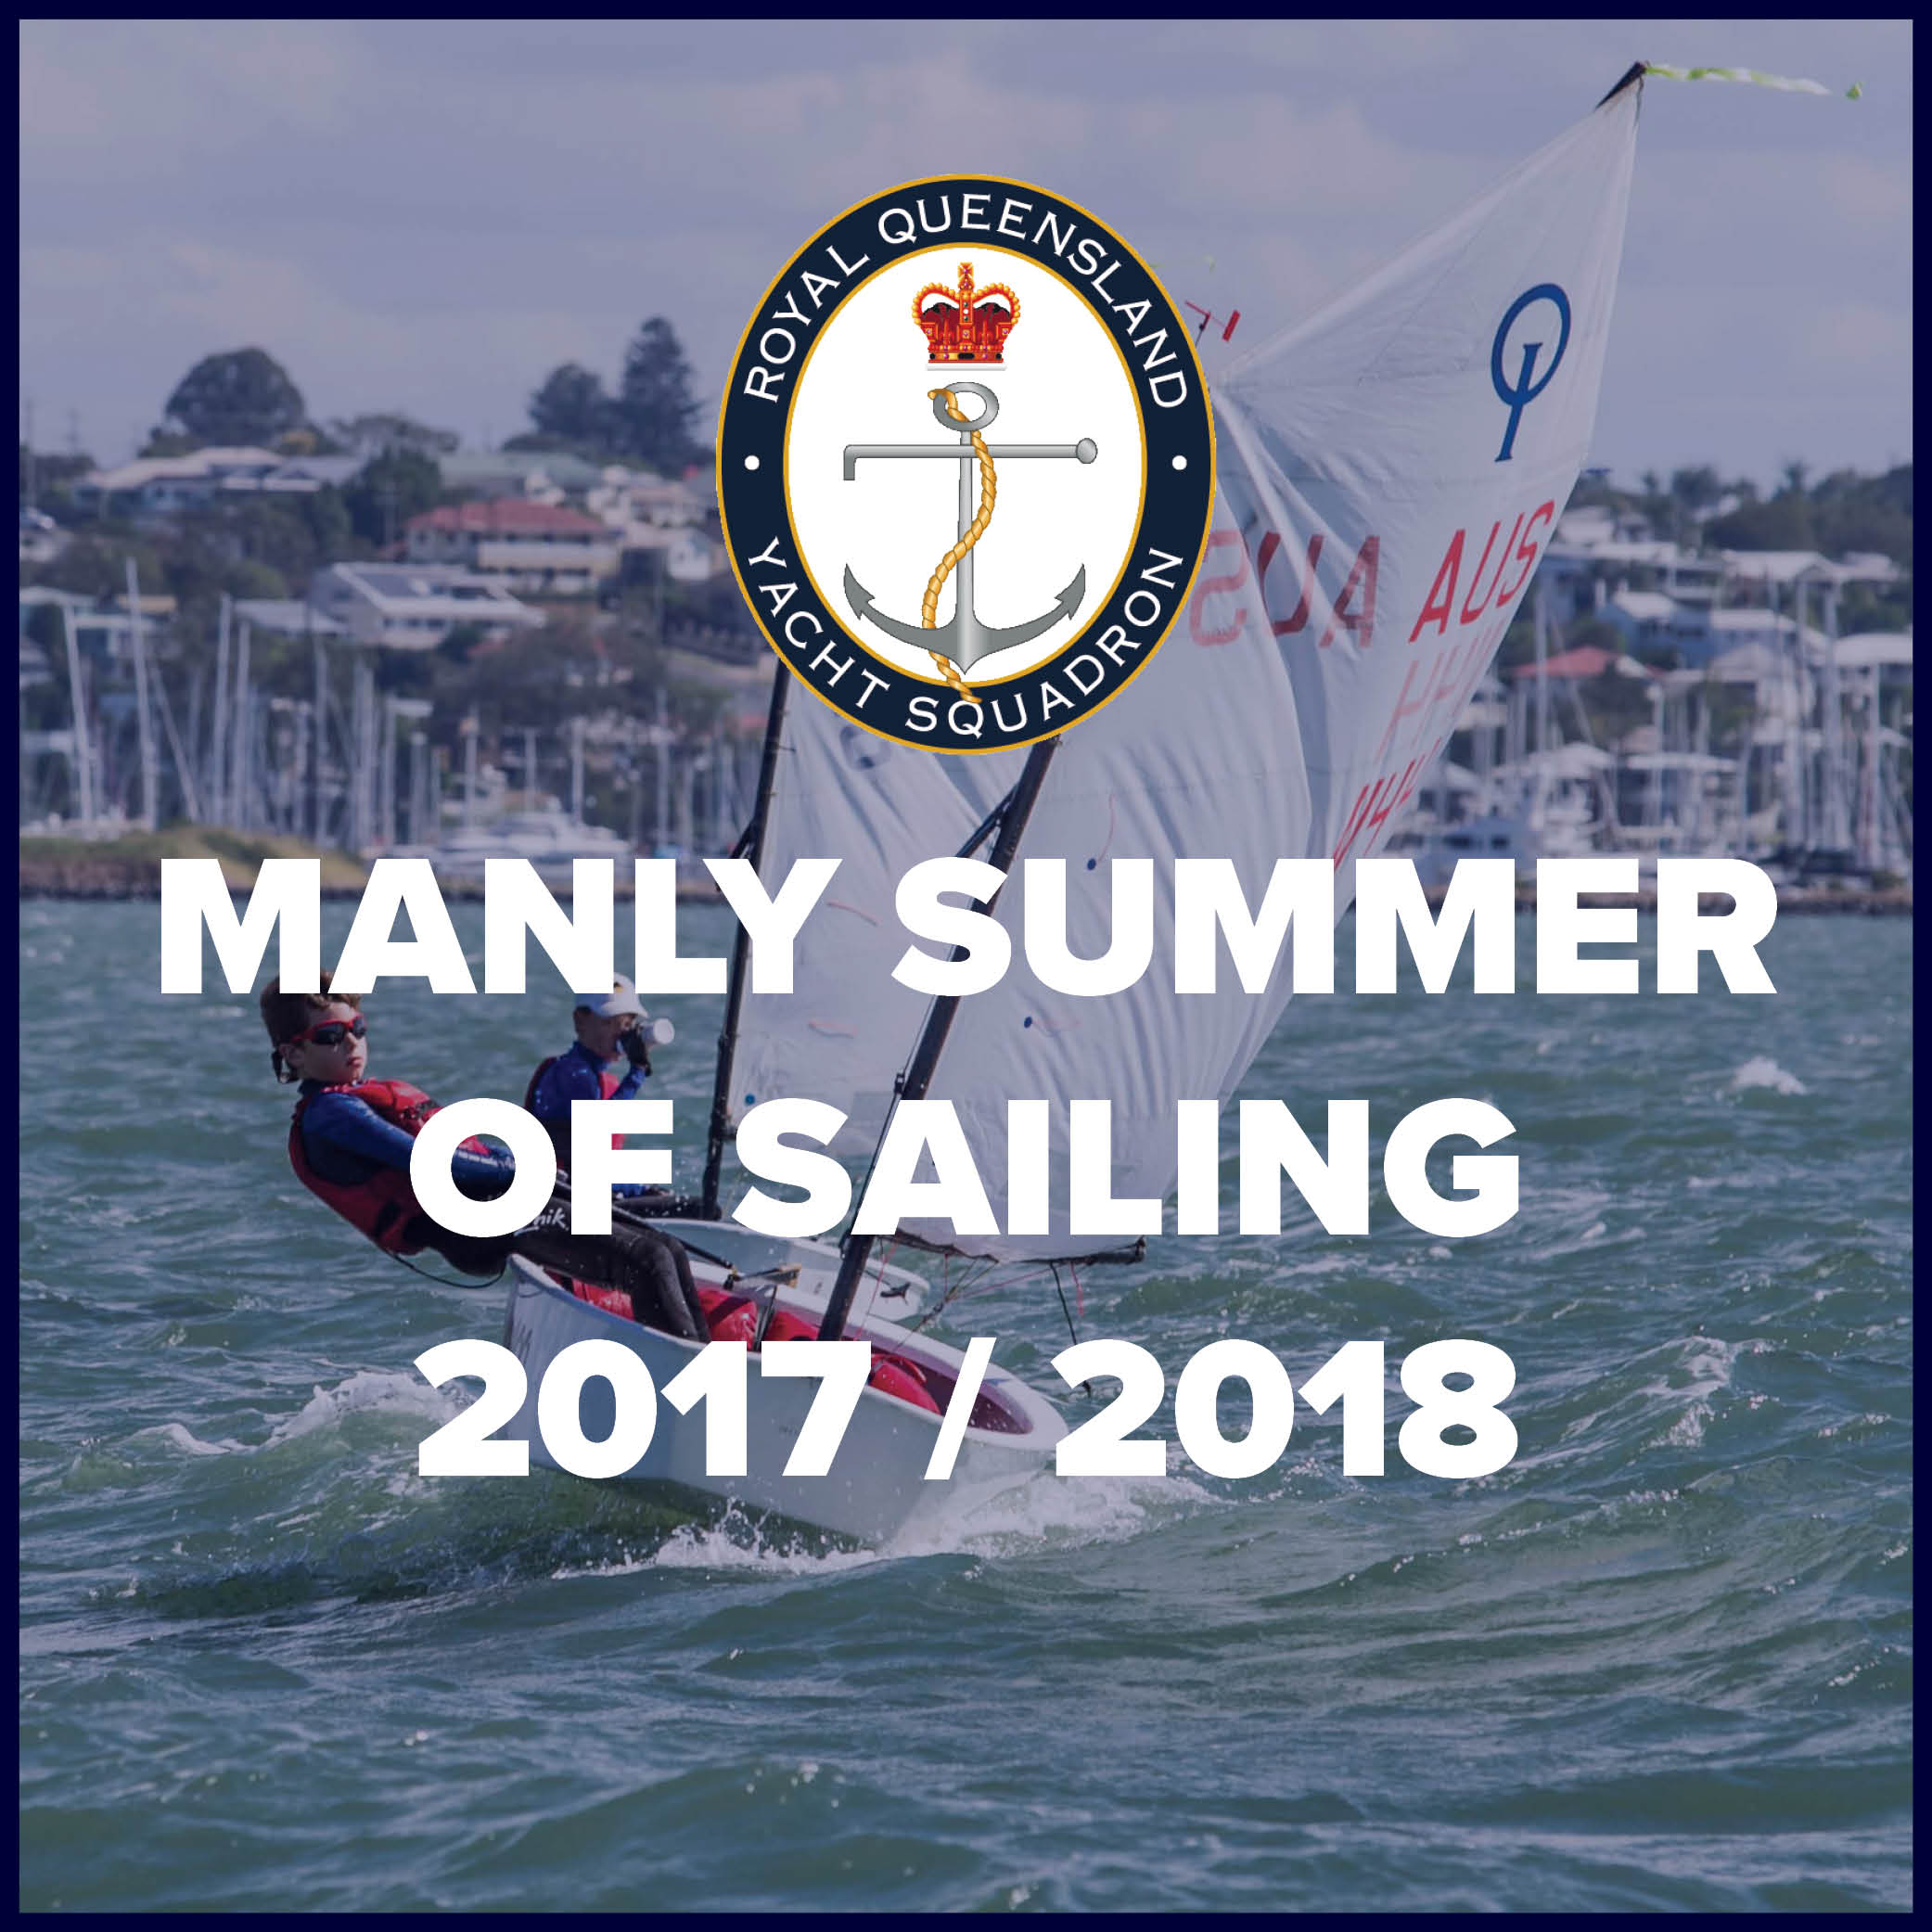 RQYS Manly Summer of Sailing events